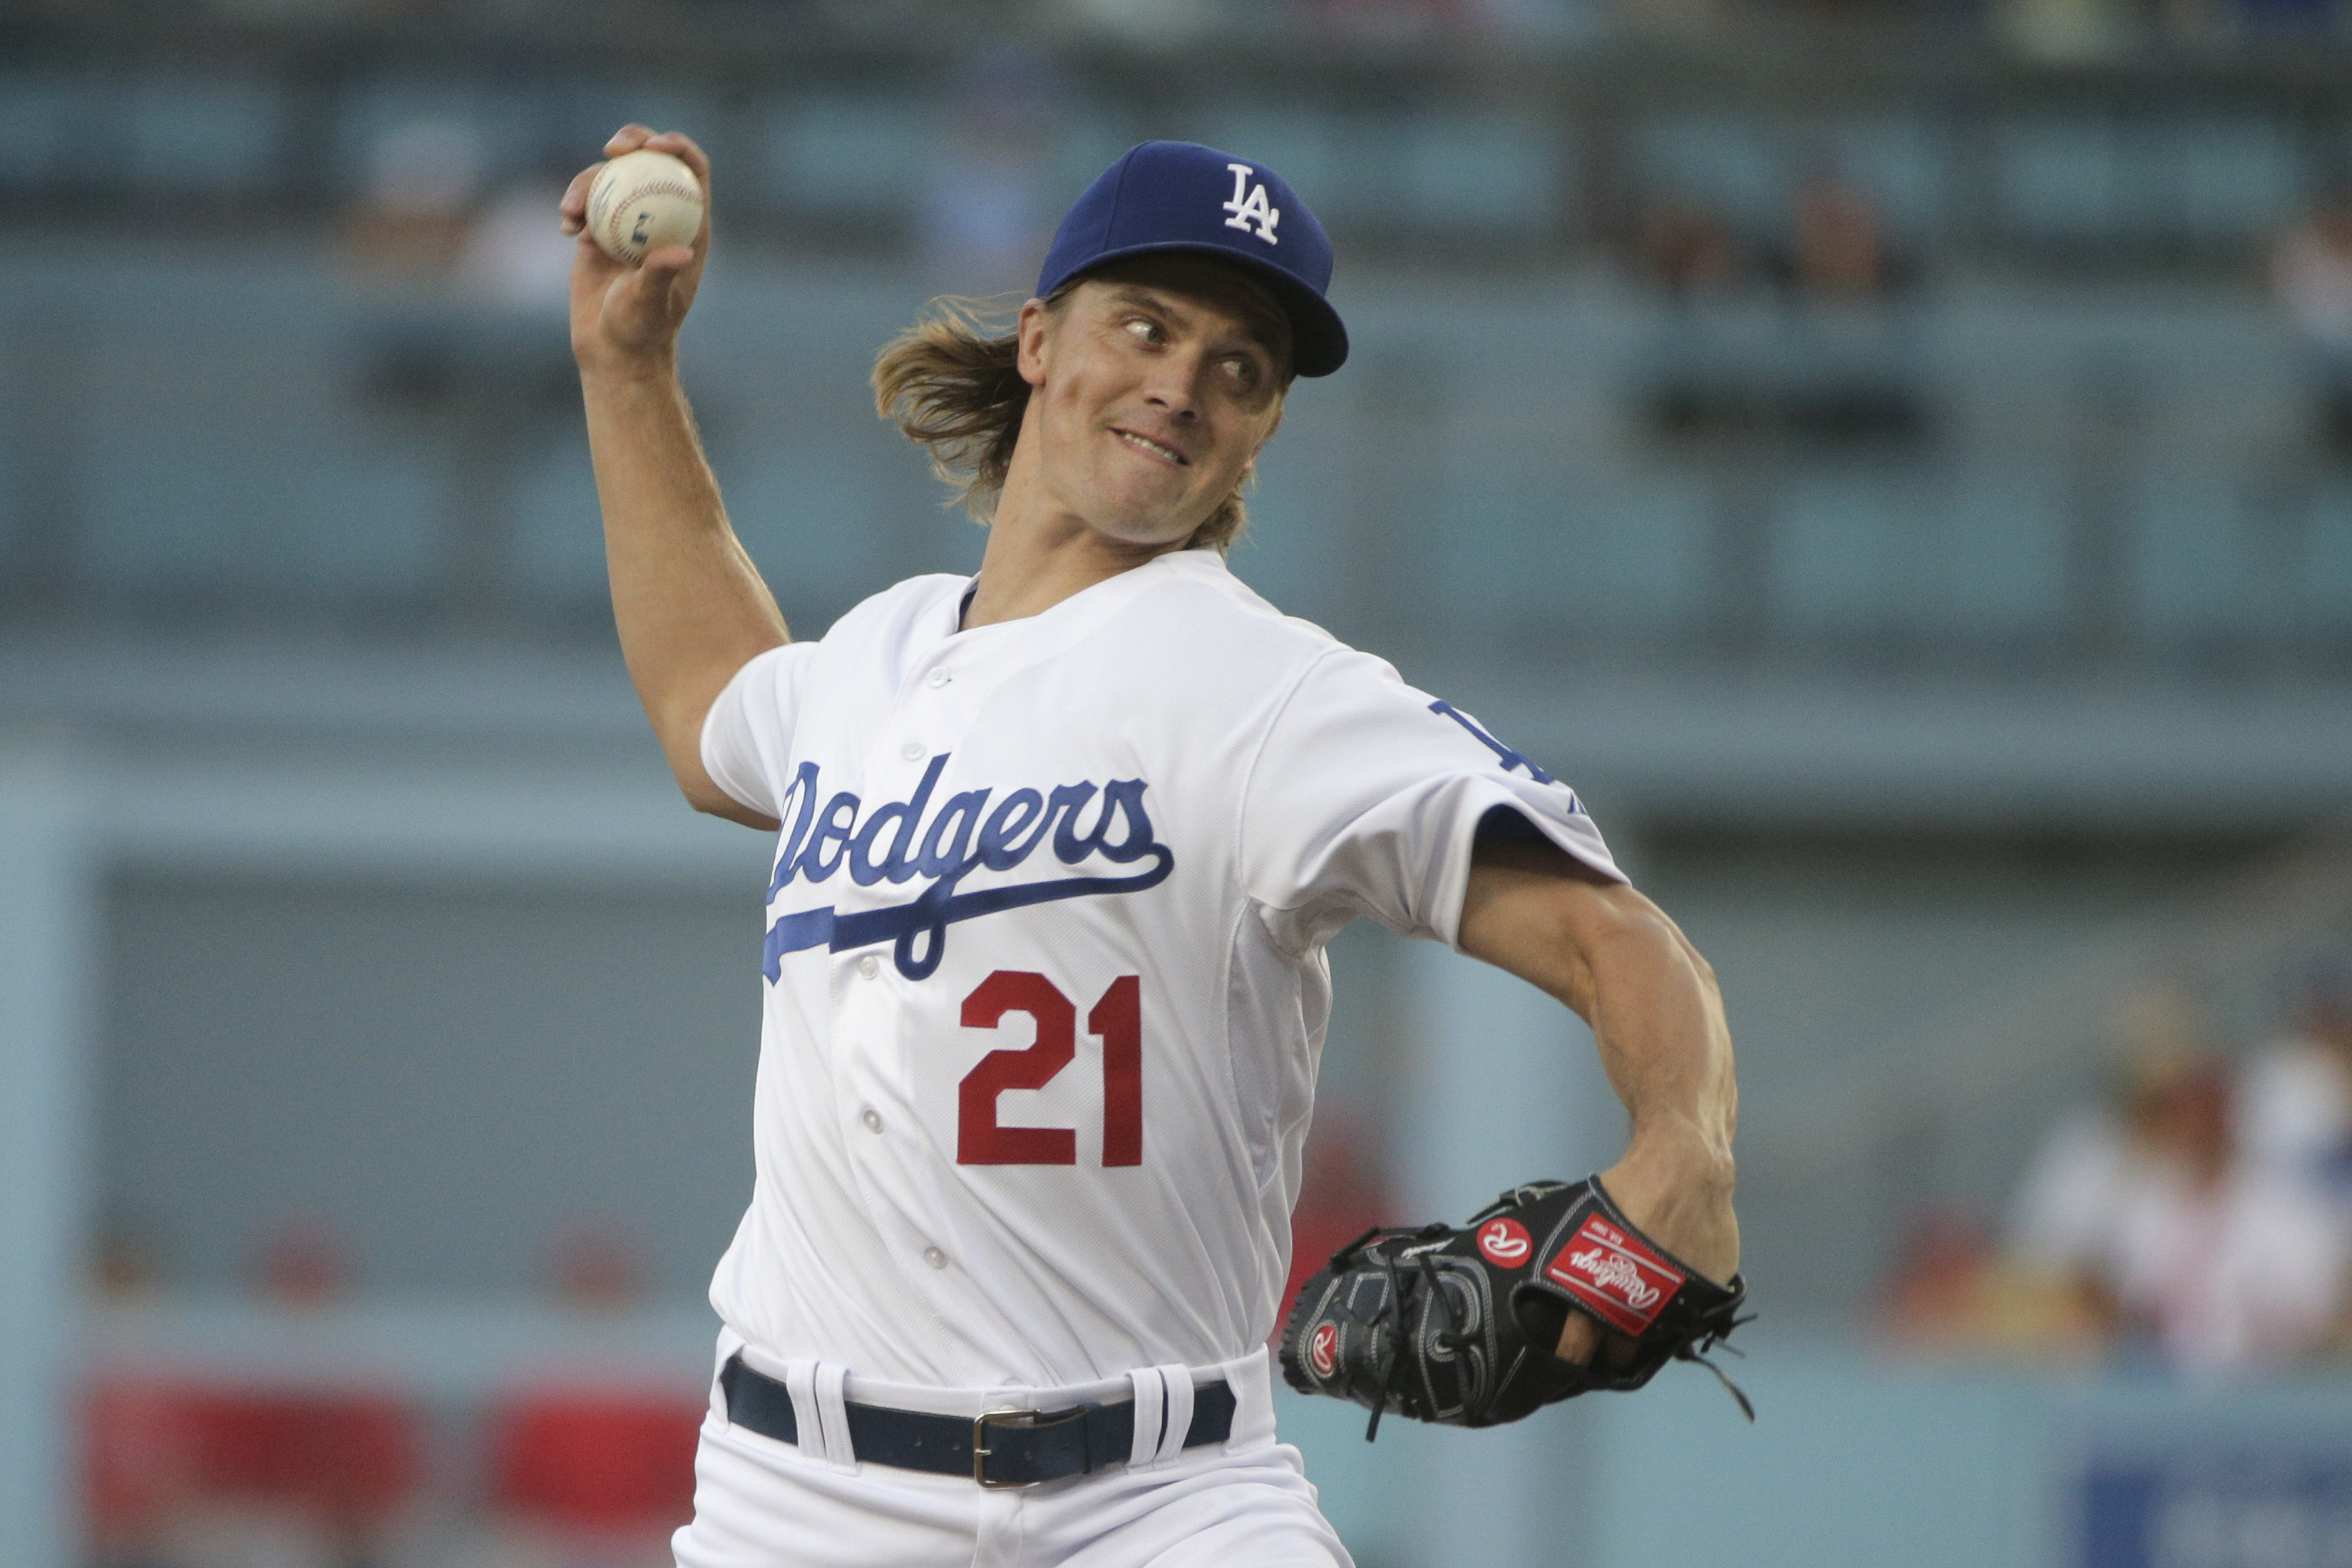 Los Angeles Dodgers starting pitcher Zack Greinke throws against the Los Angeles Angels during the first inning of a baseball game, Friday, July 31, 2015, in Los Angeles. (AP Photo/Jae C. Hong)